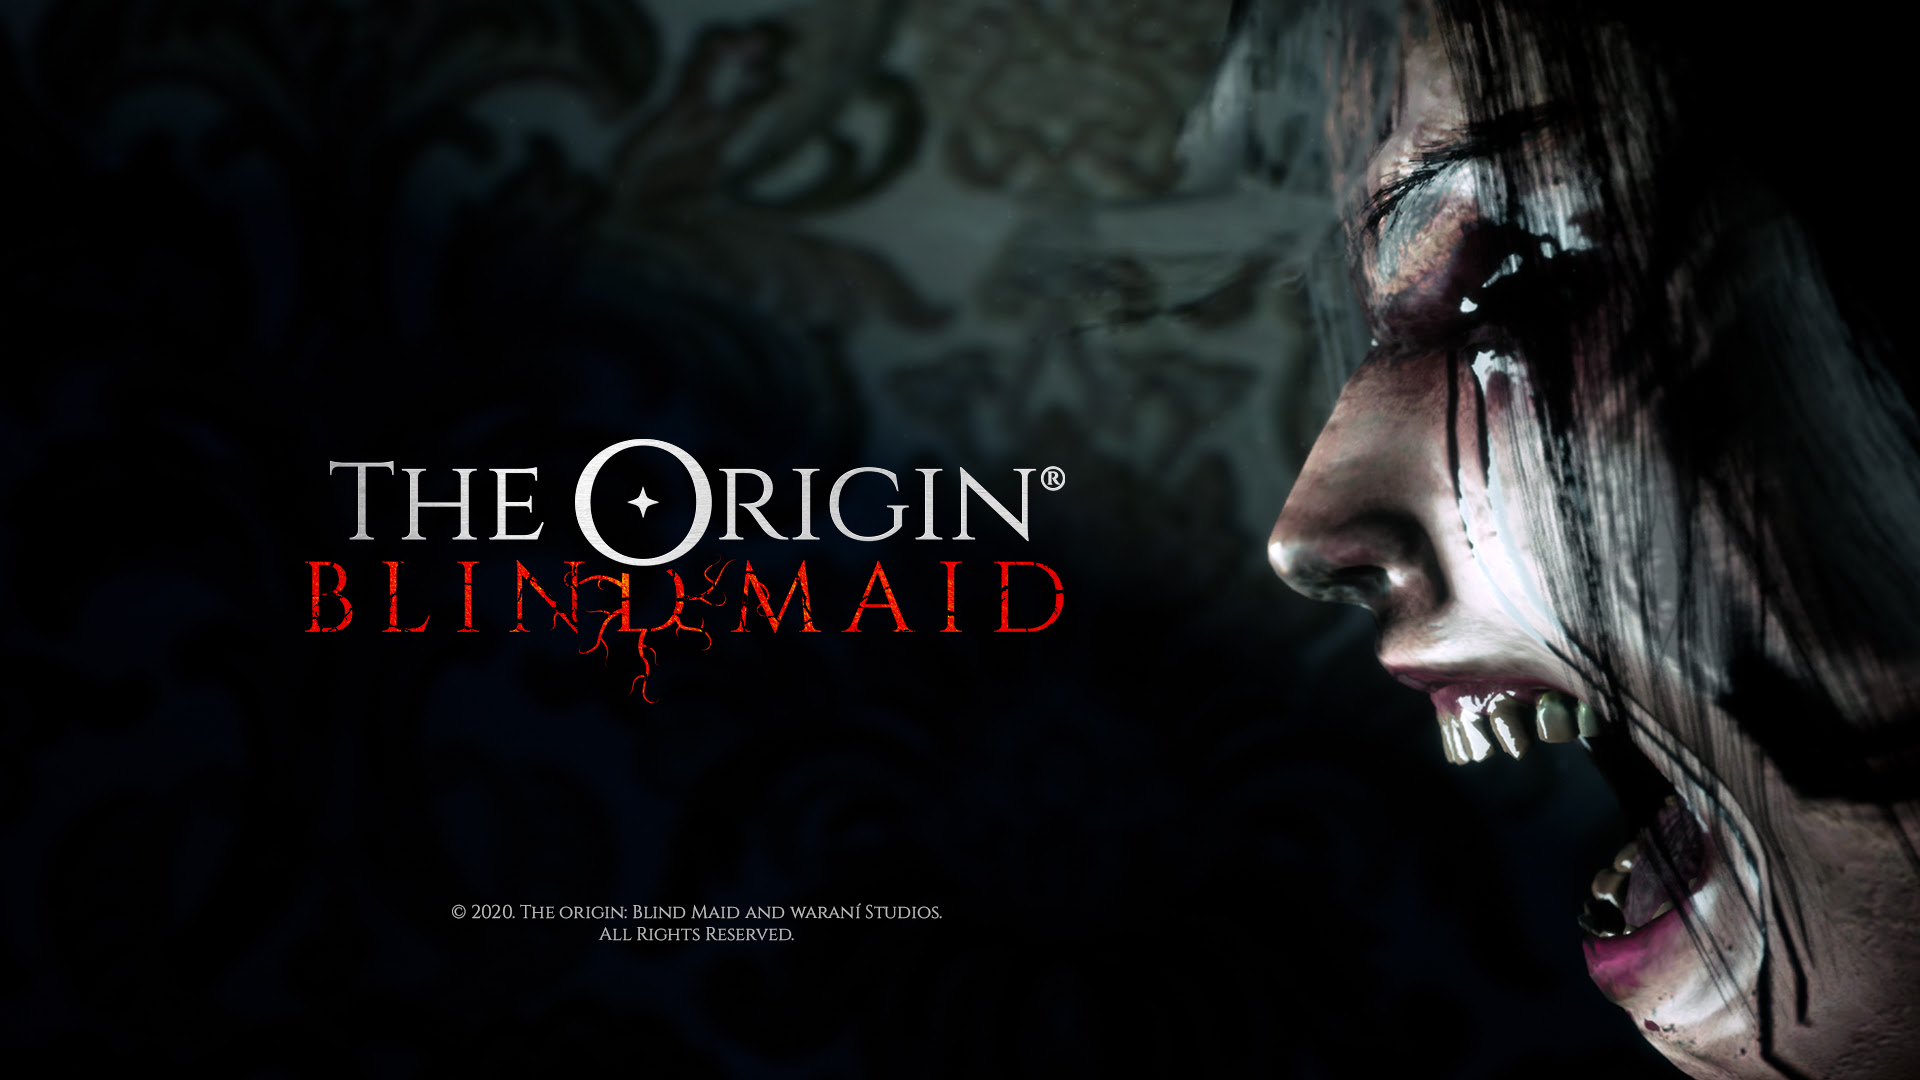 THE ORIGIN: Blind Maid de Warani Studios